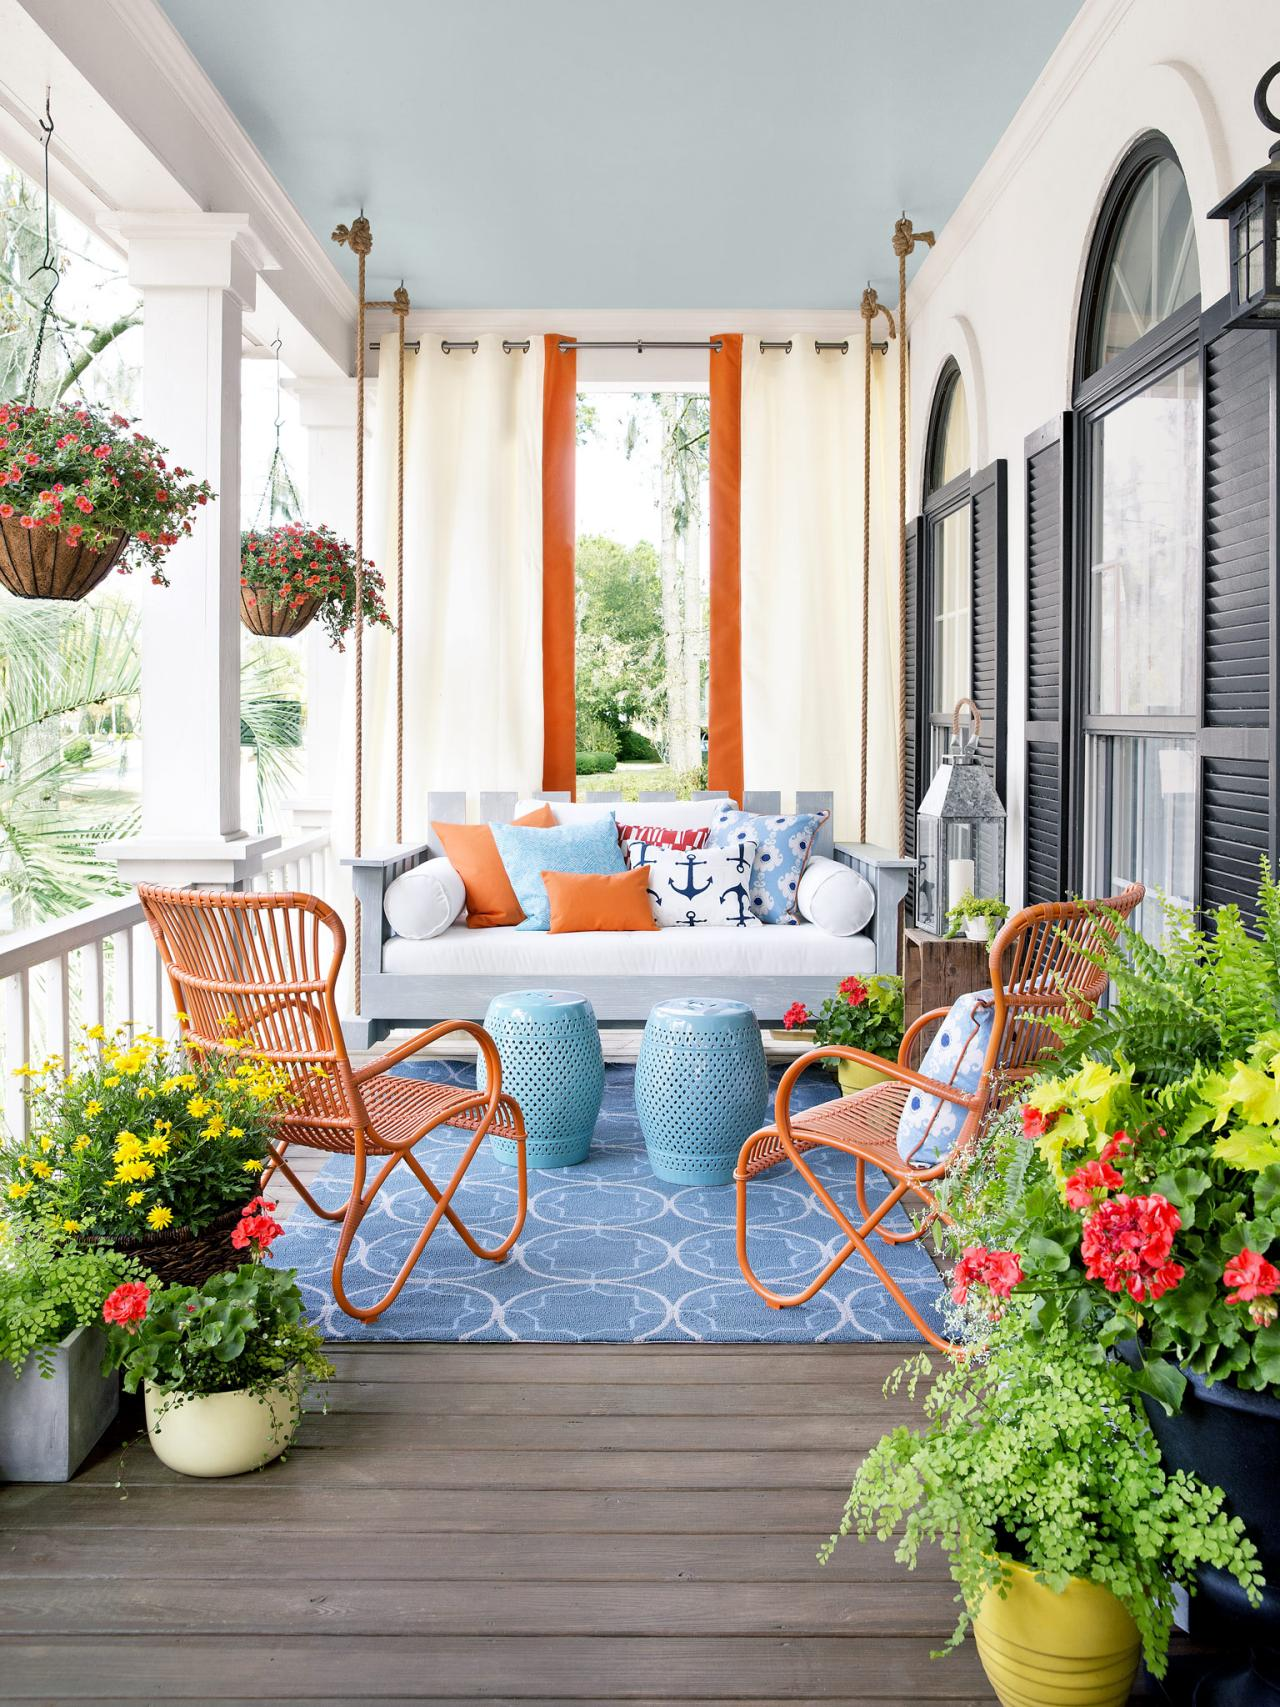 Spring Porch Ideas with a bed porch swing.